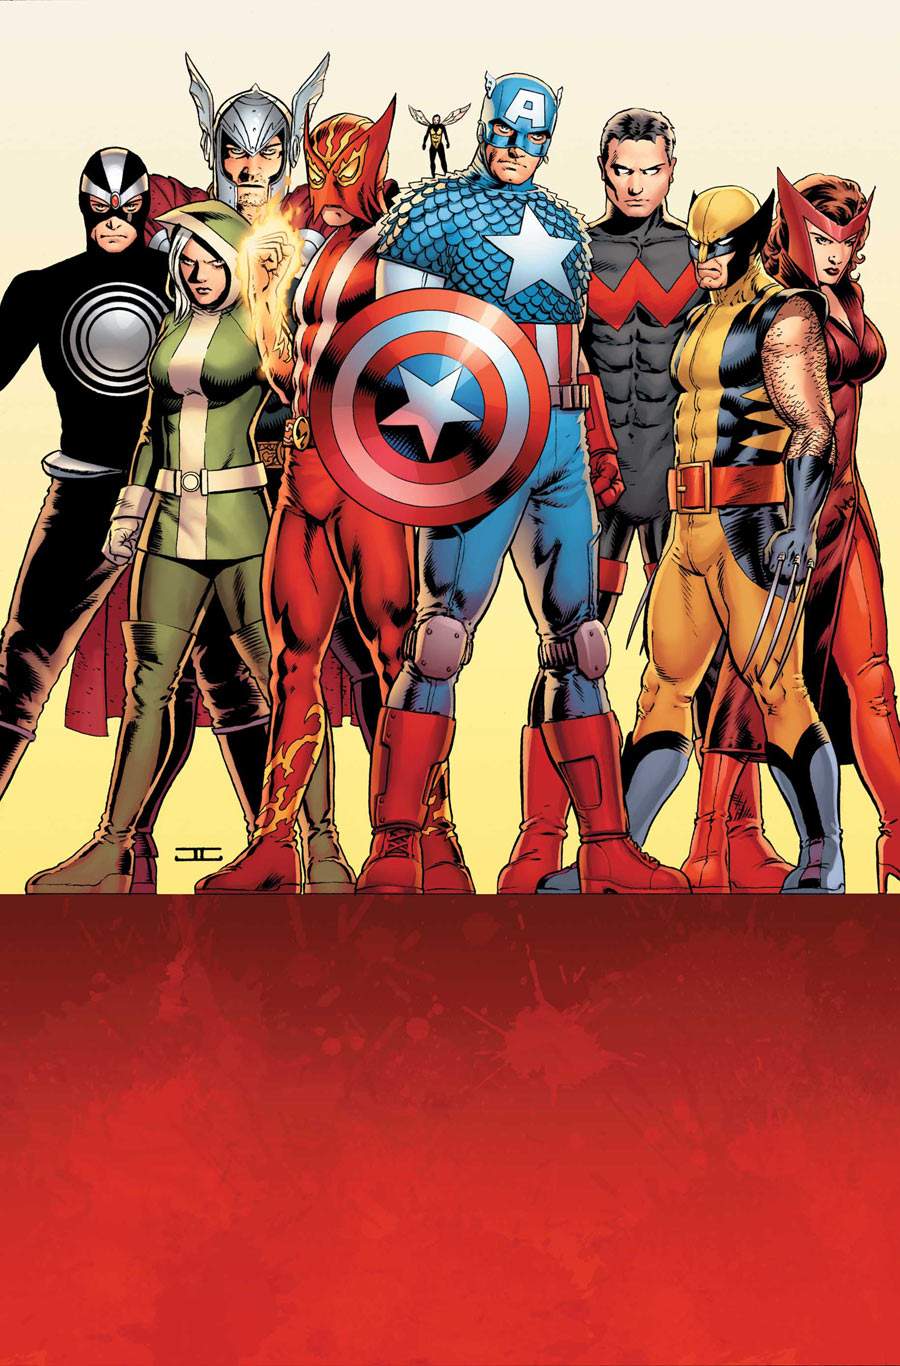 Havok with the Avengers